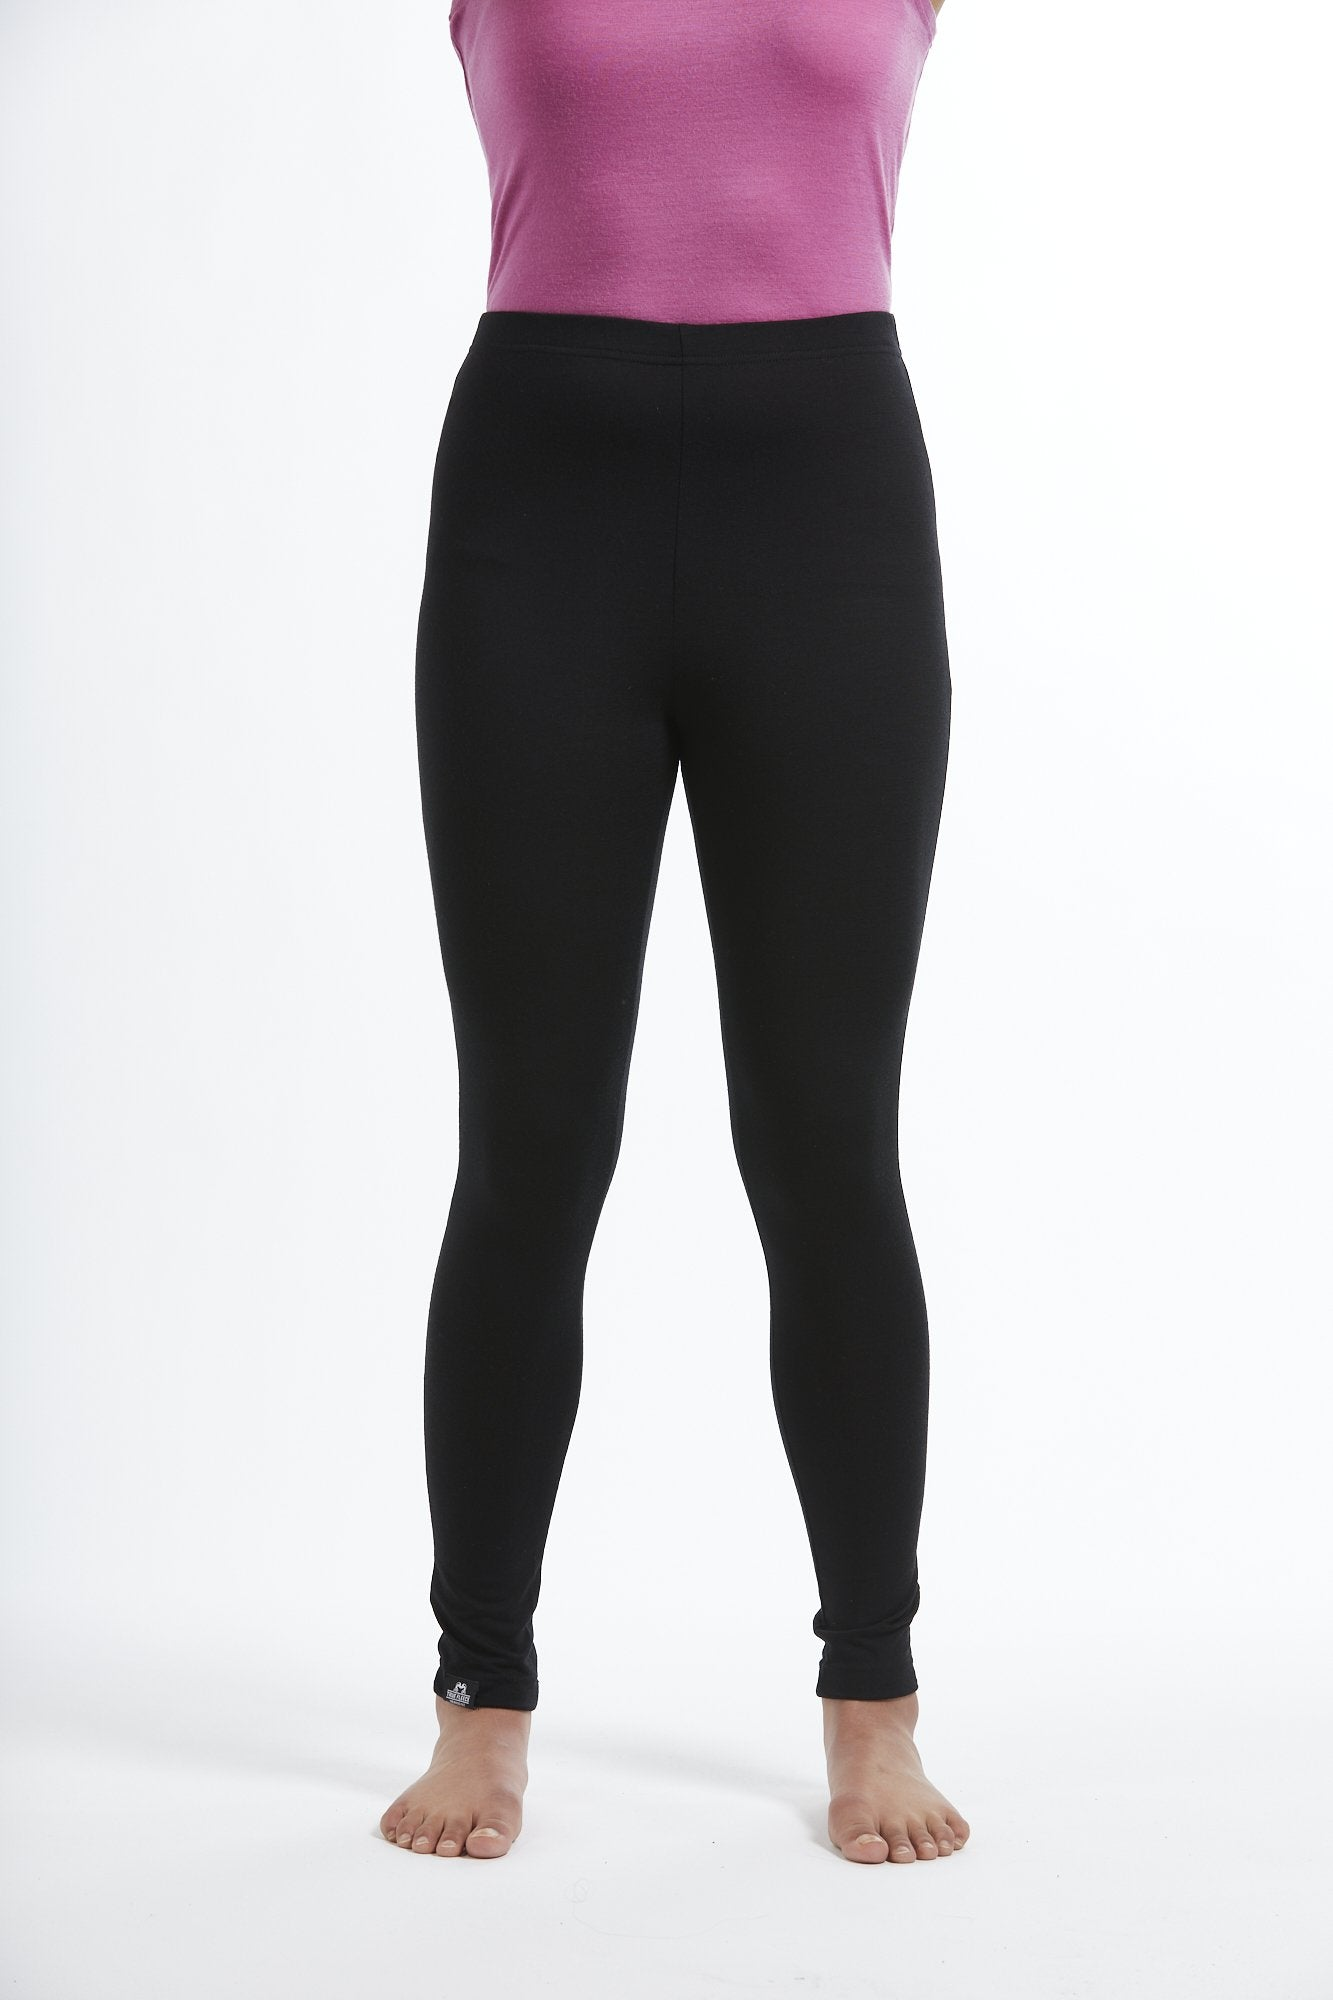 Womens merino wool thermal leggings